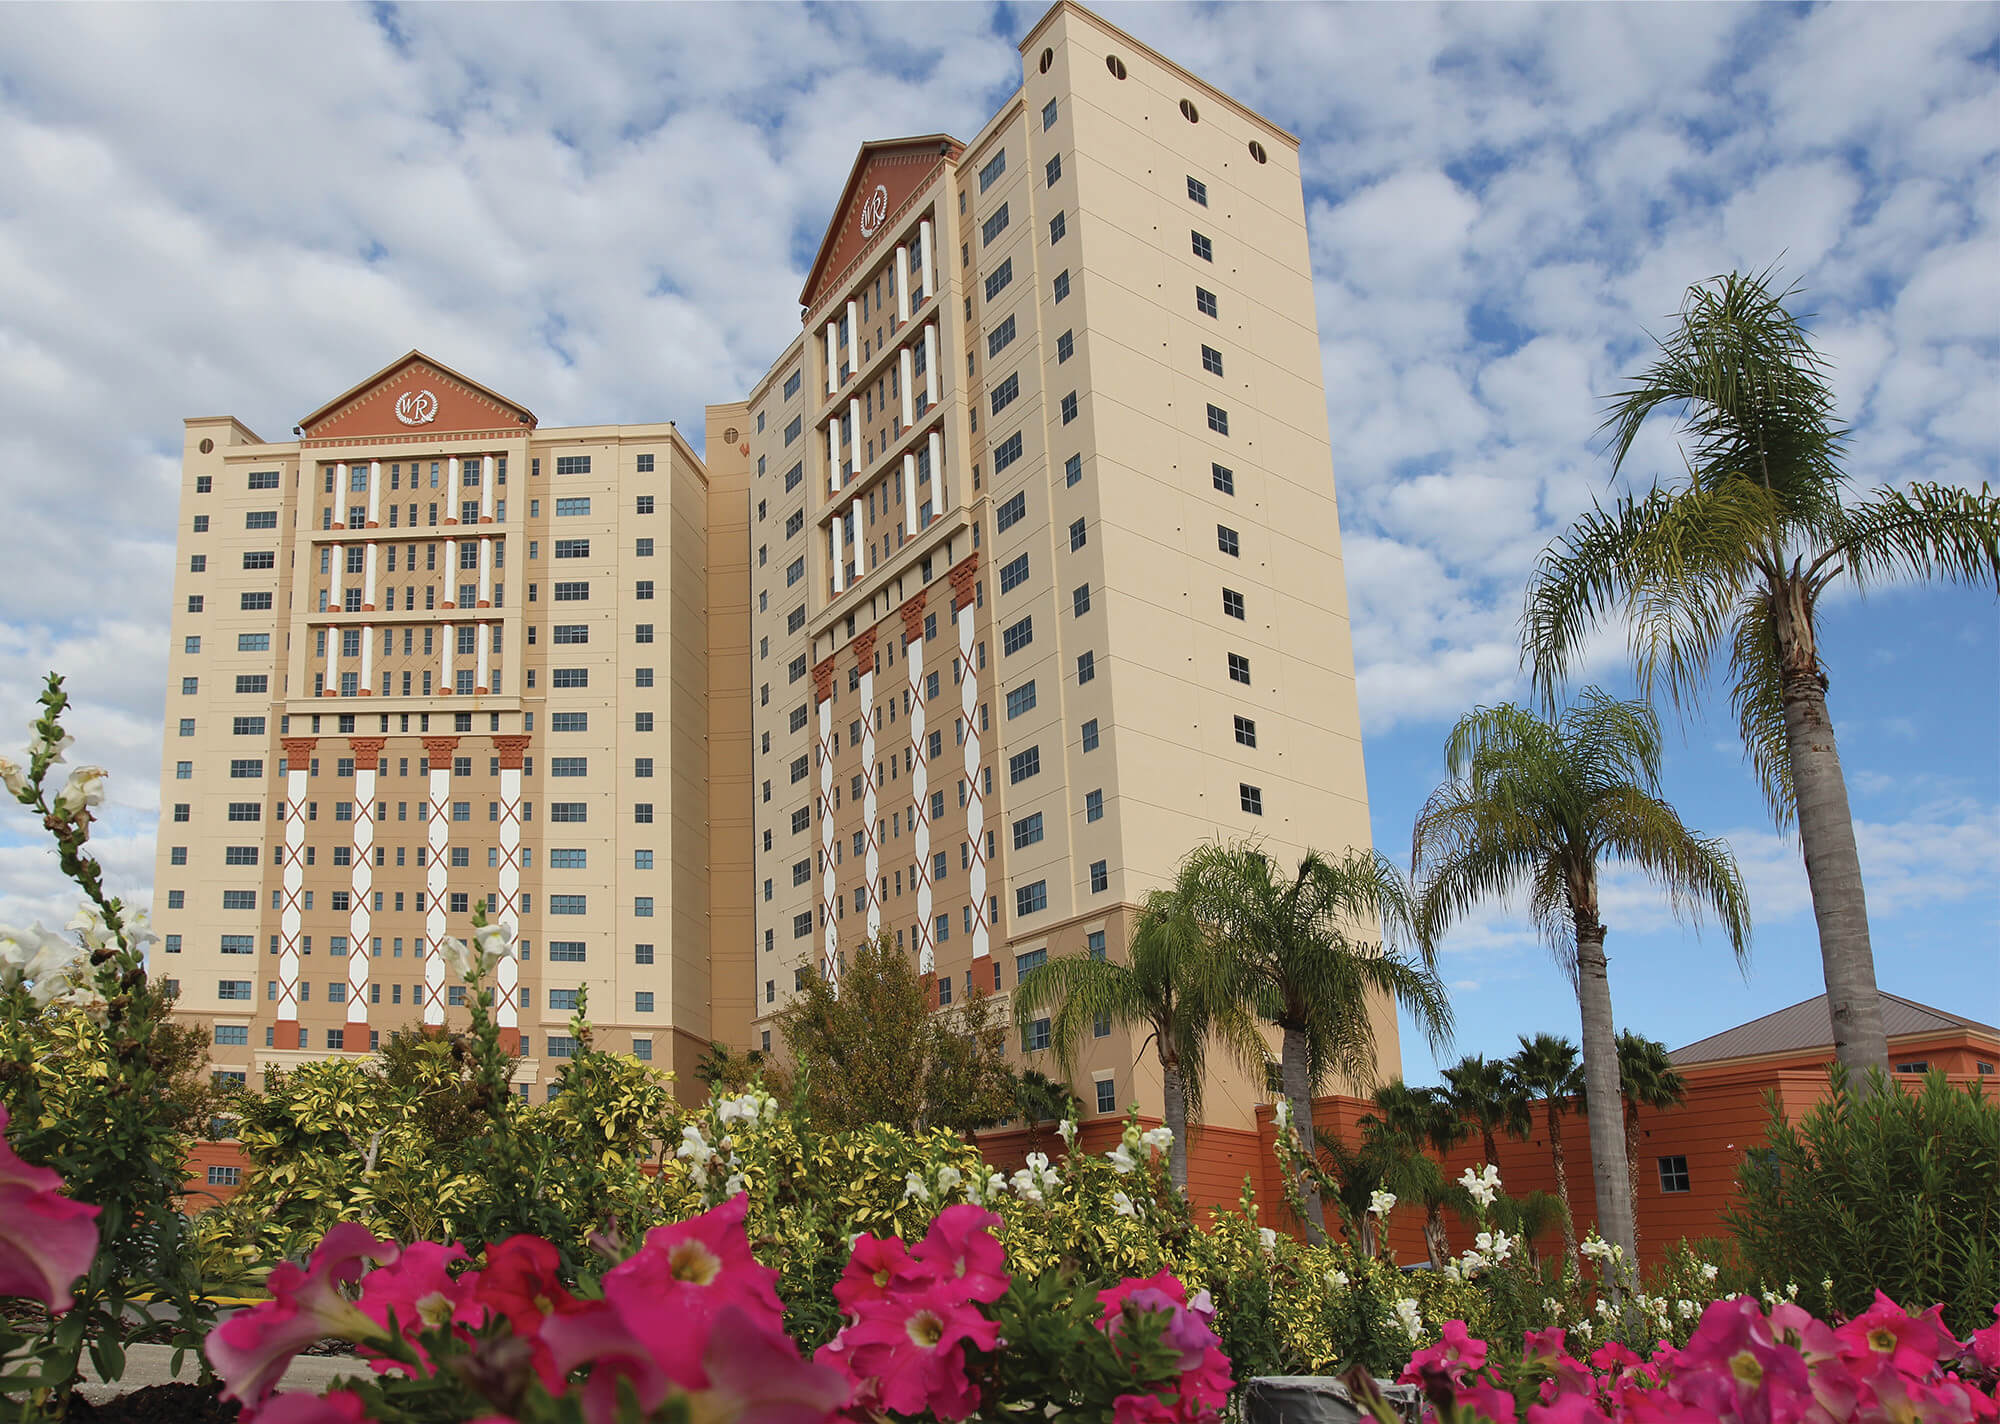 Exterior at one of our resorts on International Drive in Orlando Florida | Westgate Palace Resort | Westgate Resorts